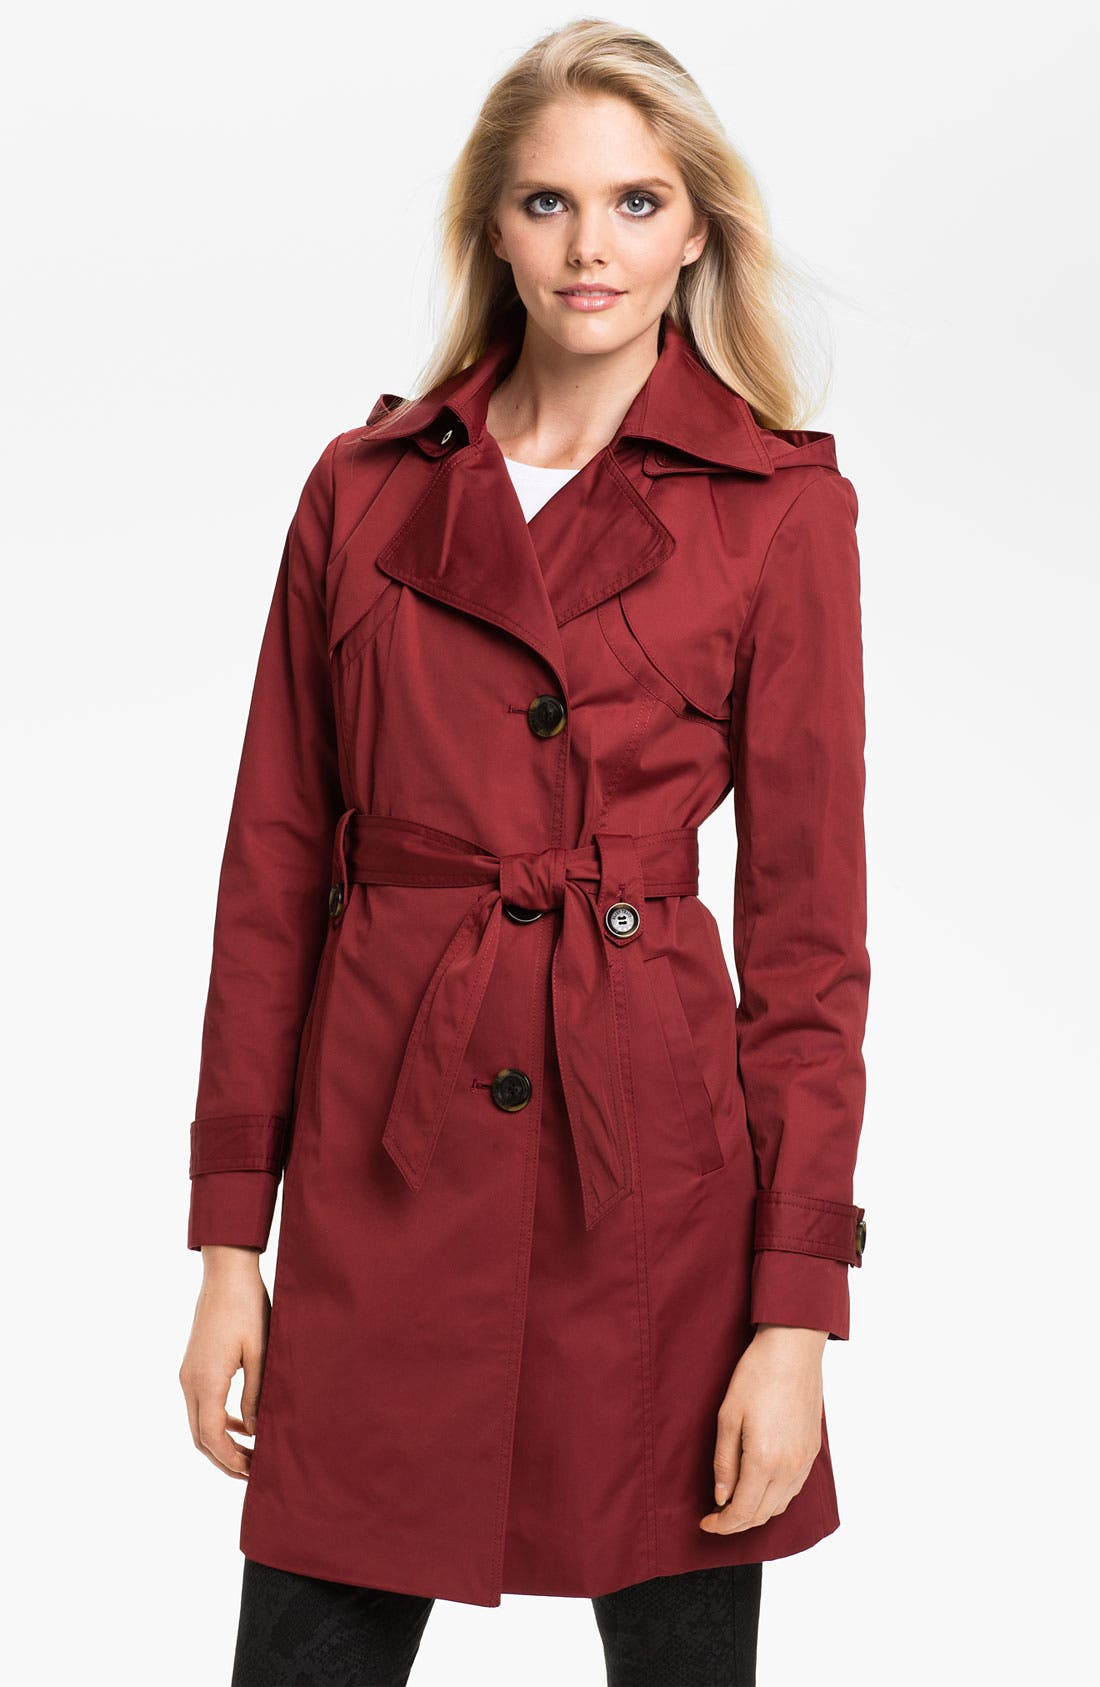 Alternate Image 1 Selected - Ellen Tracy Water Repellent Trench Coat (Online Only)